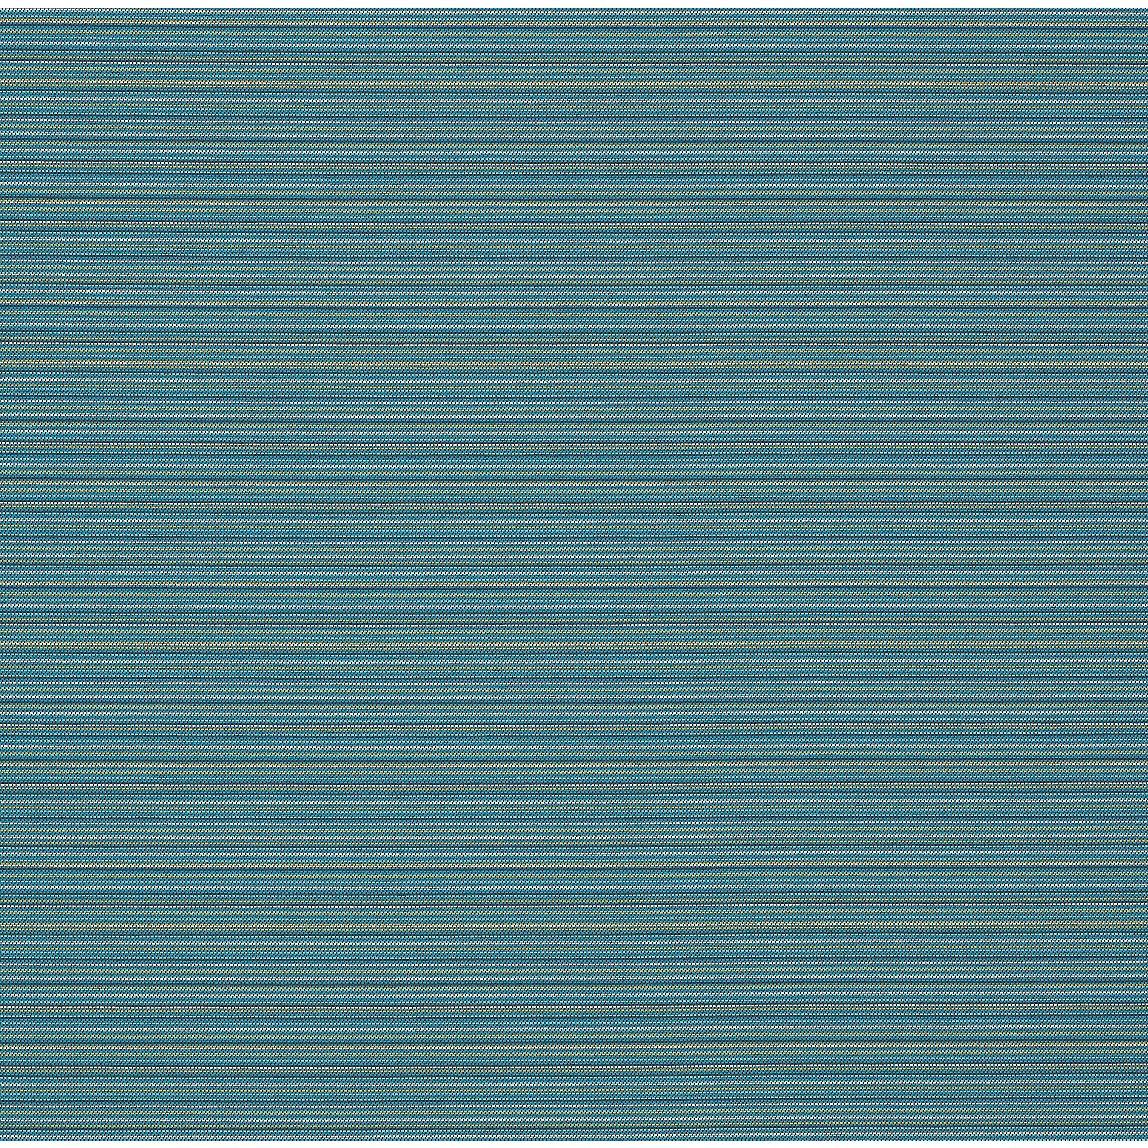 Lateral Calypso Swatch